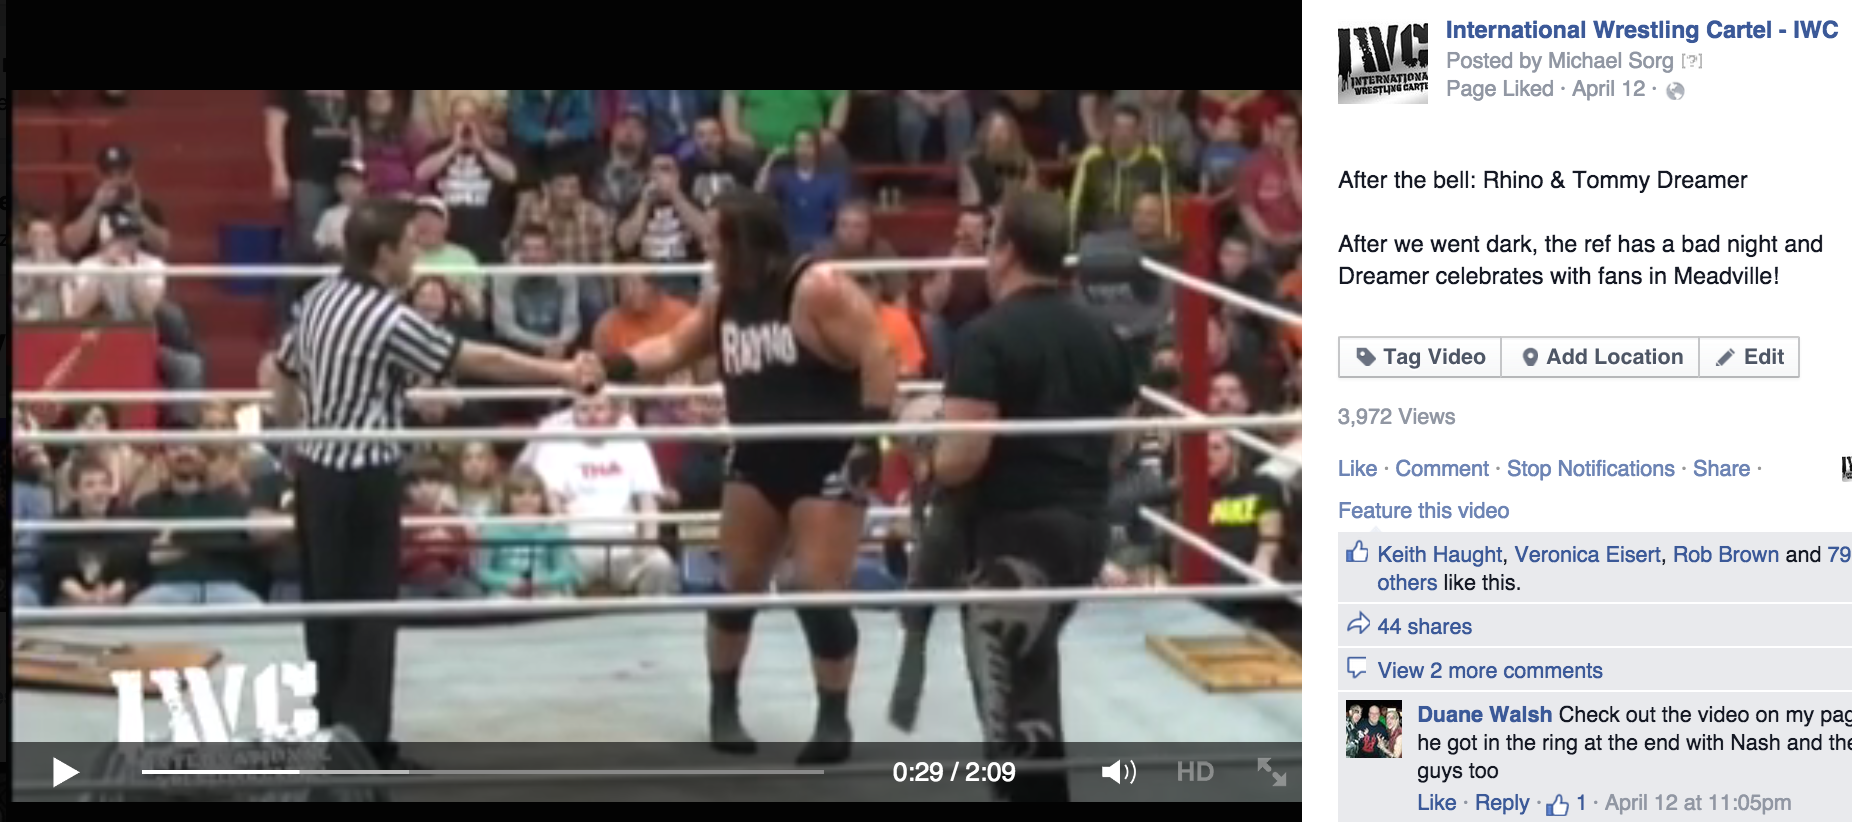 International Wrestling Cartel Video with Tommy Dreamer and Rhino